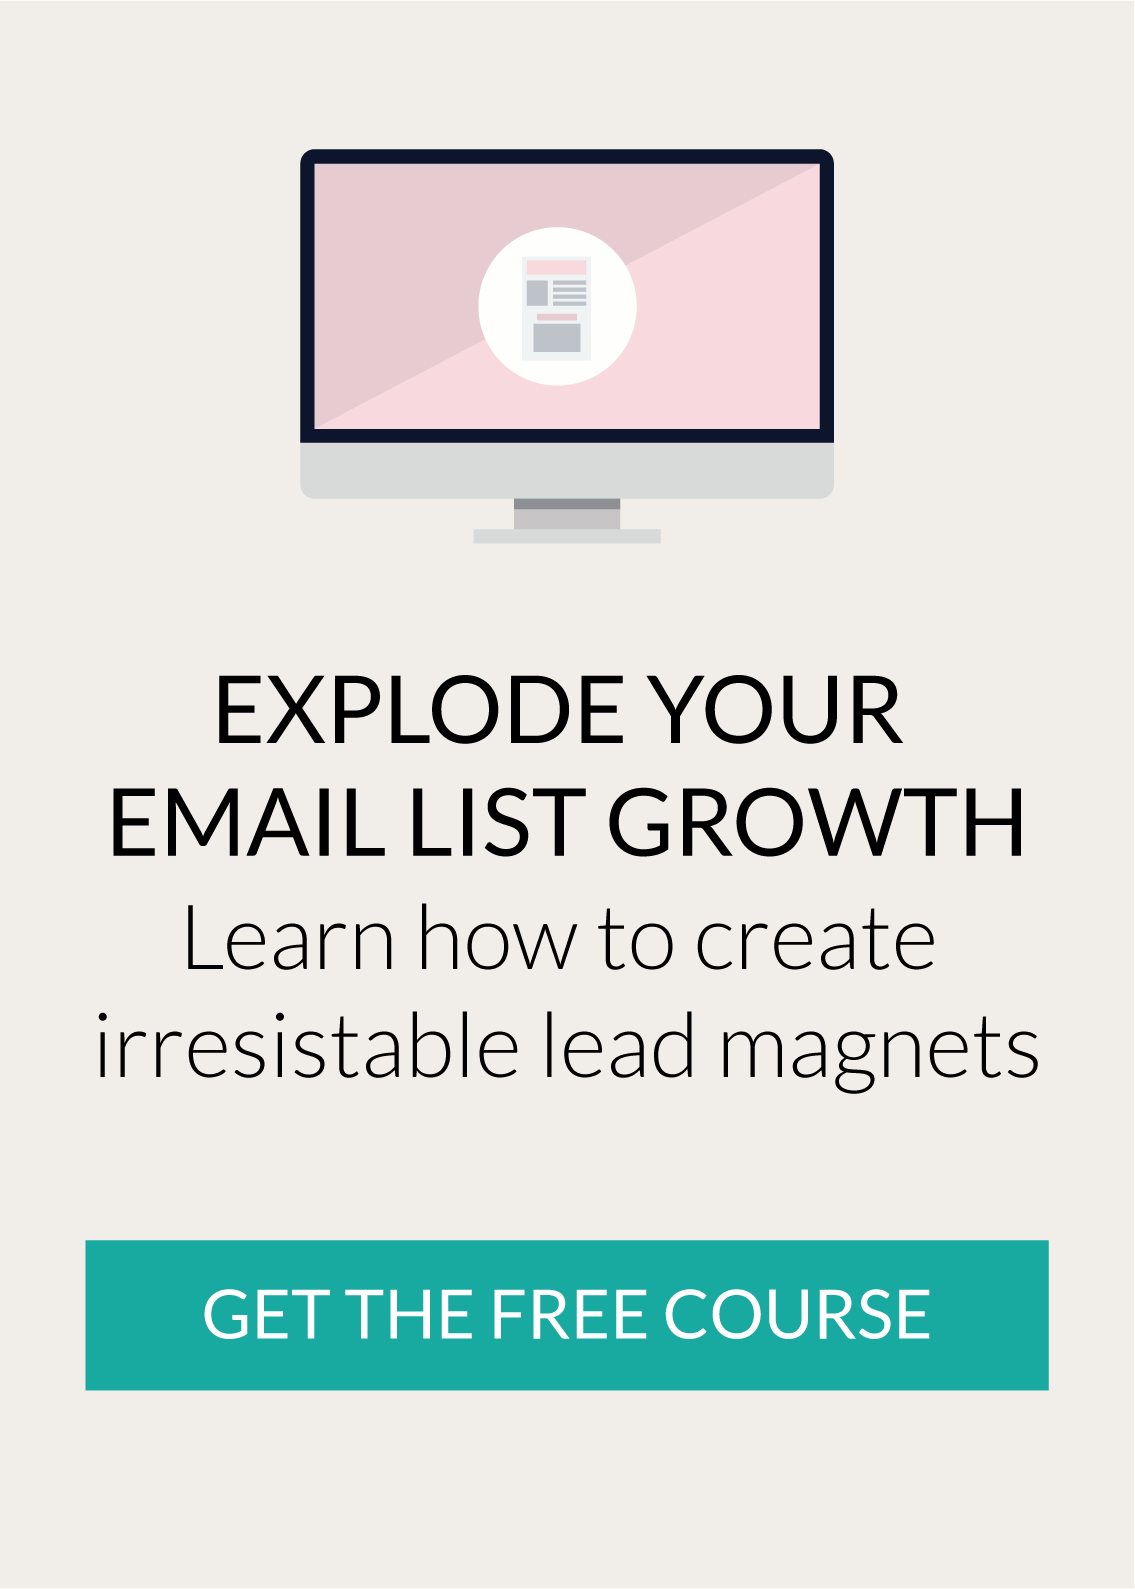 Create irresistible lead magnets free email course